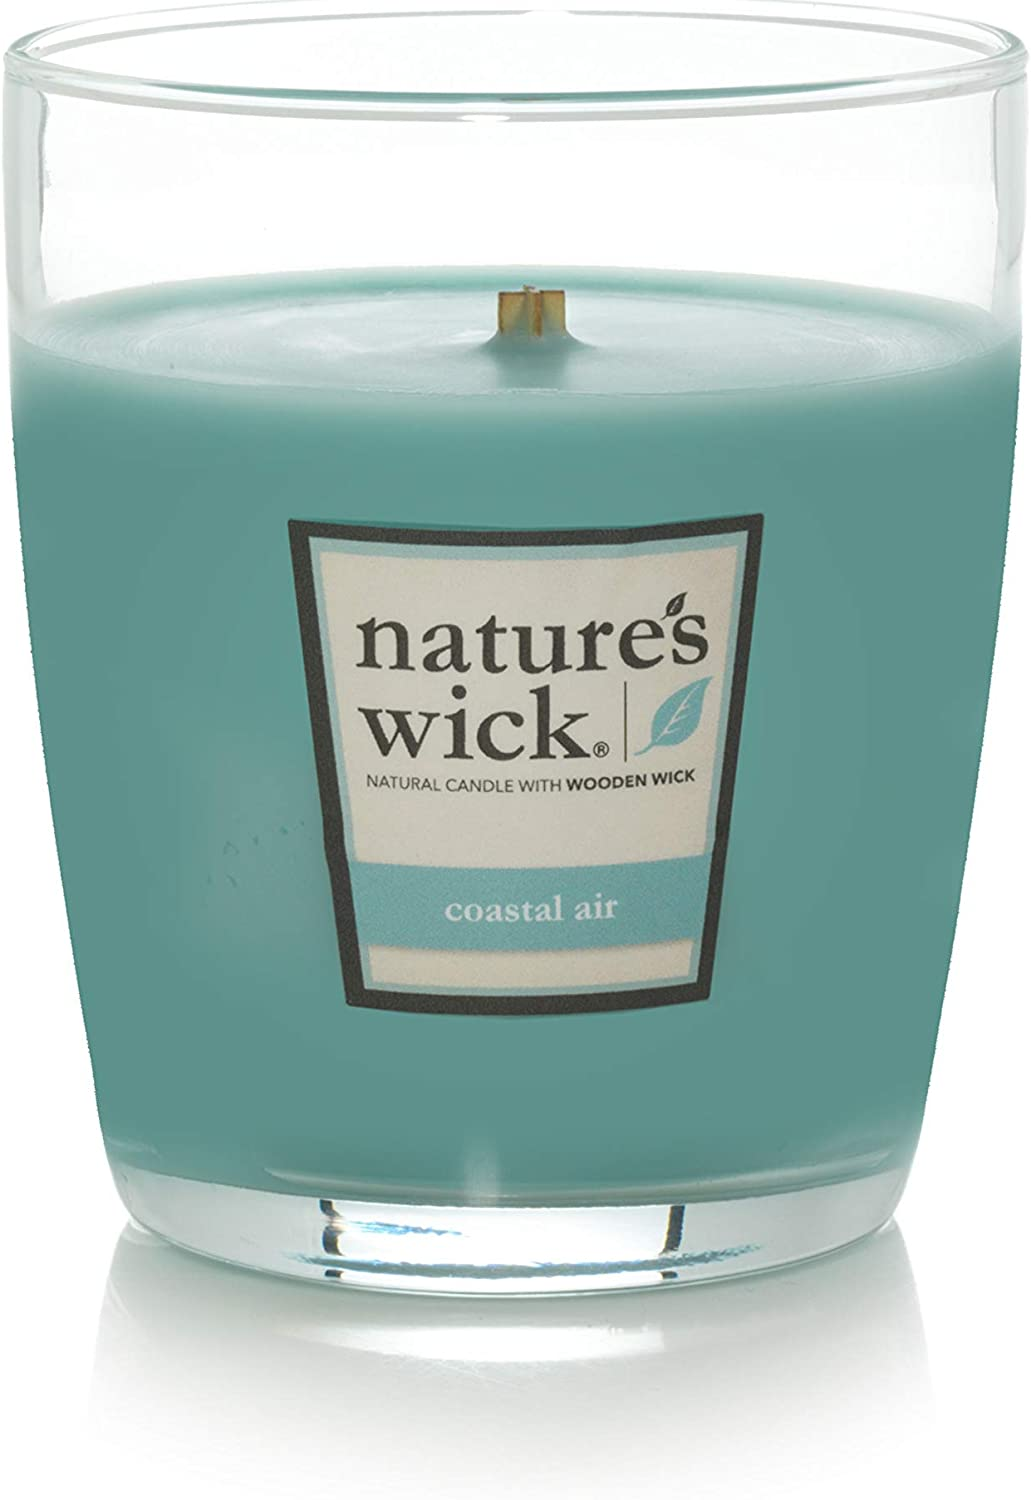 Natures Wick Scented 10 oz Jarred Natural Wood Wick Candle with up to 65 Hour Burn Time Crimson Cinnamon